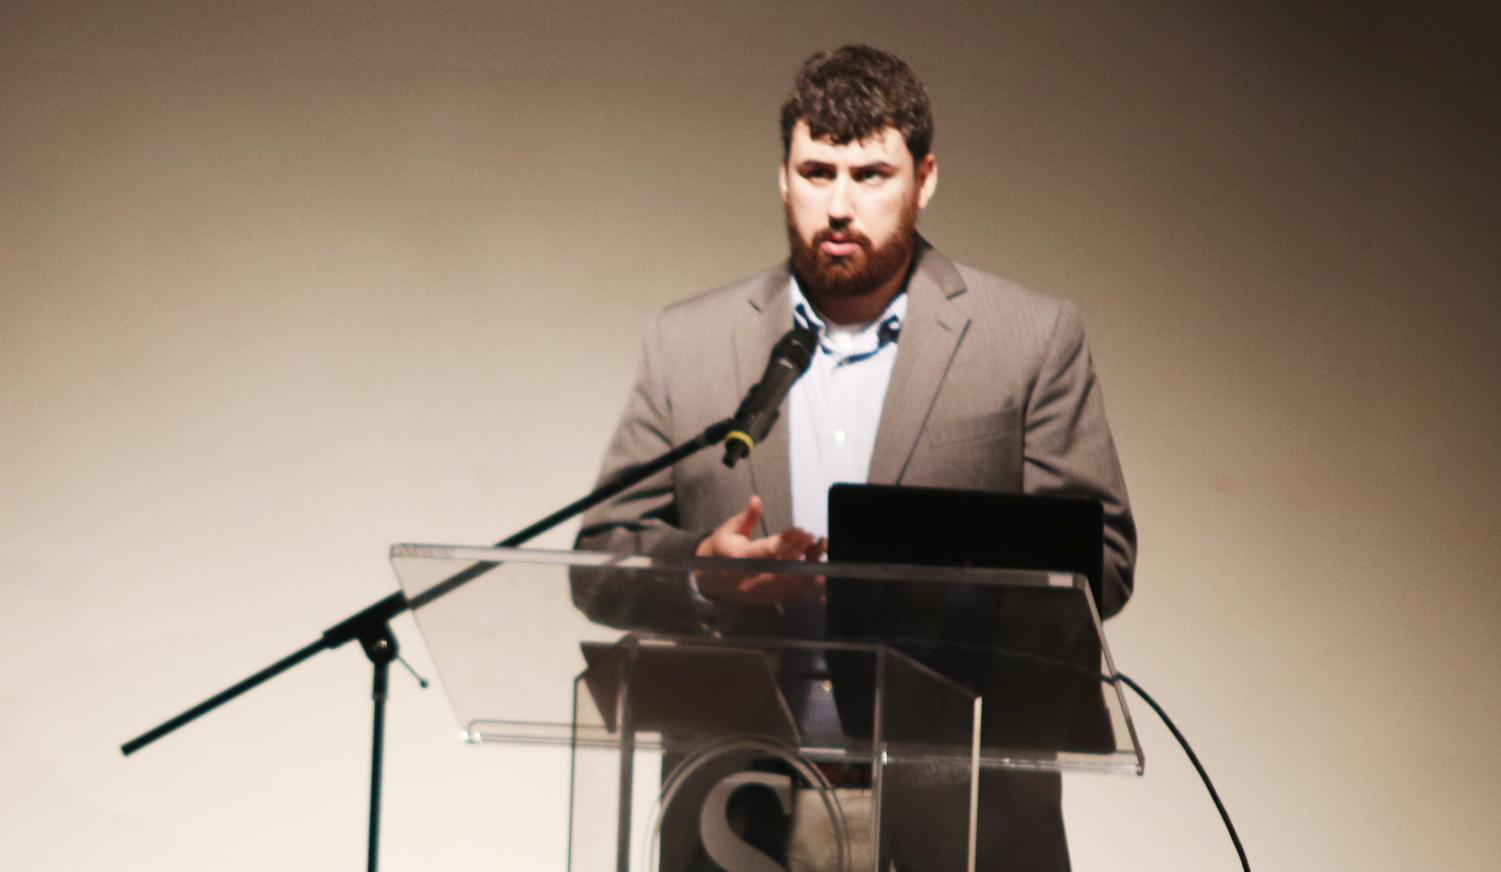 Chad Duffaut, a graduate student, addresses inclusion in sports with